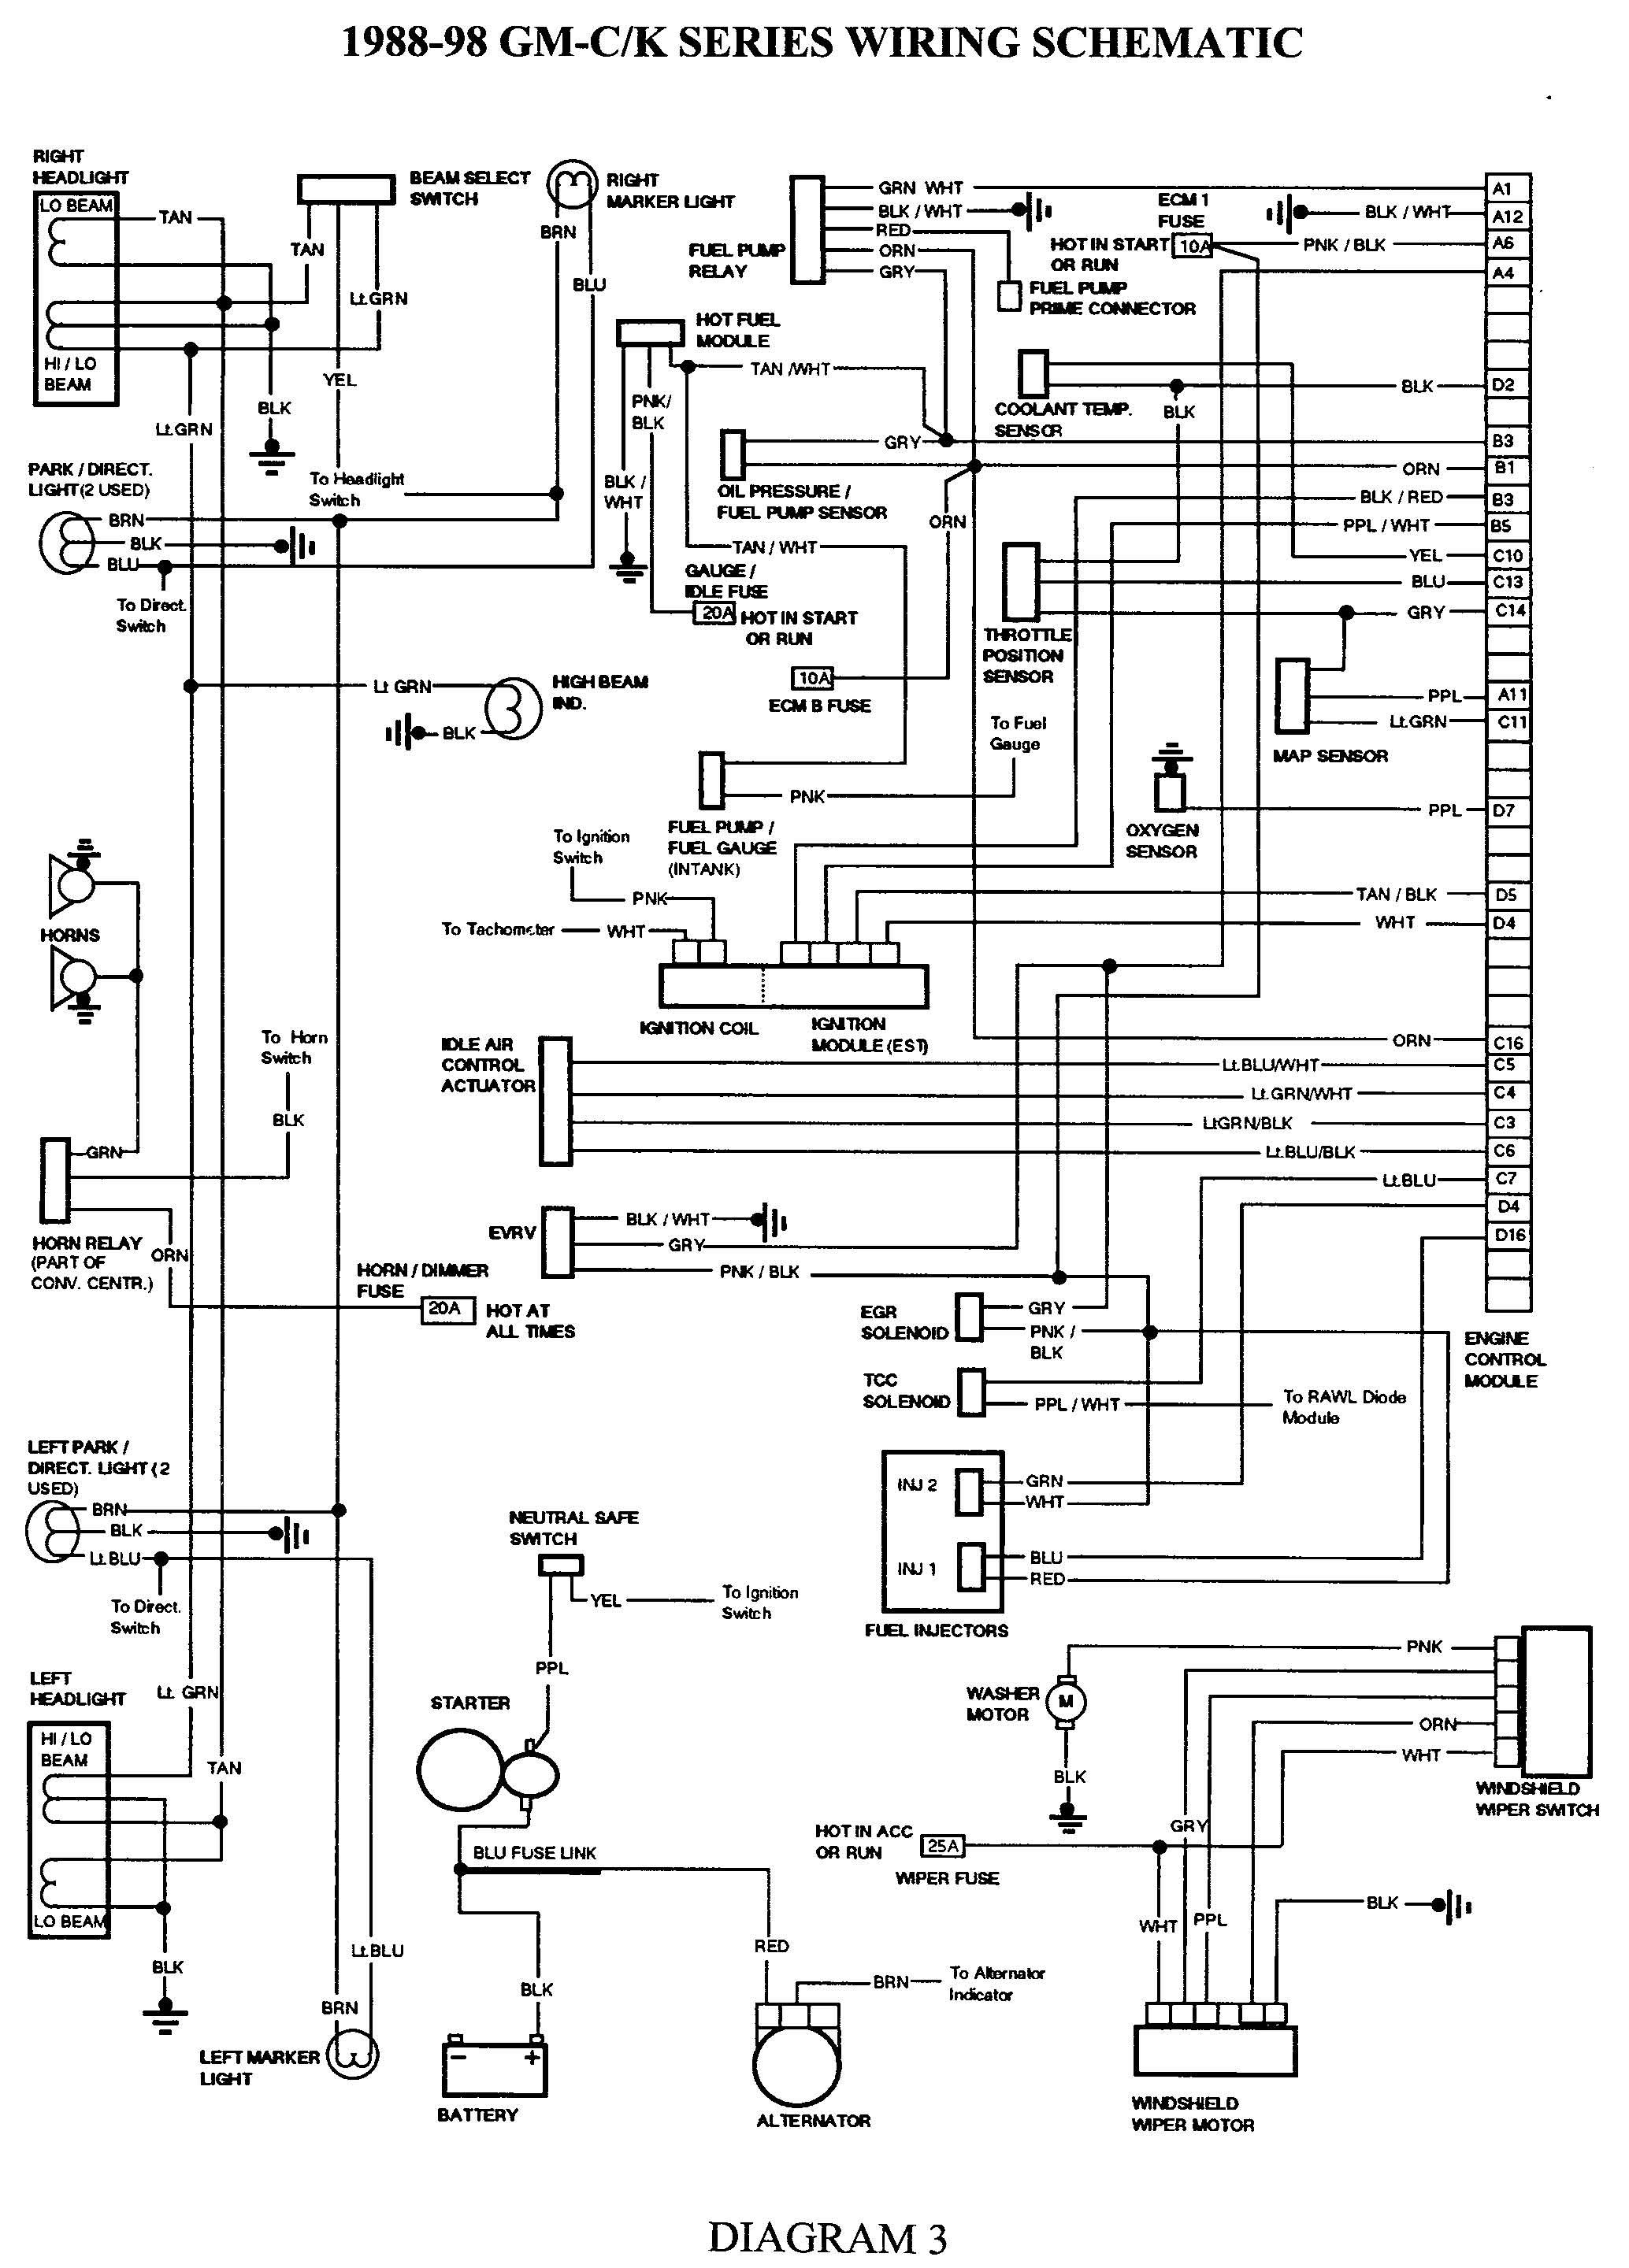 gmc wiring diagrams 7 1 sandybloom nl \u2022gmc truck wiring diagrams on gm wiring harness diagram 88 98 kc rh pinterest com gmc